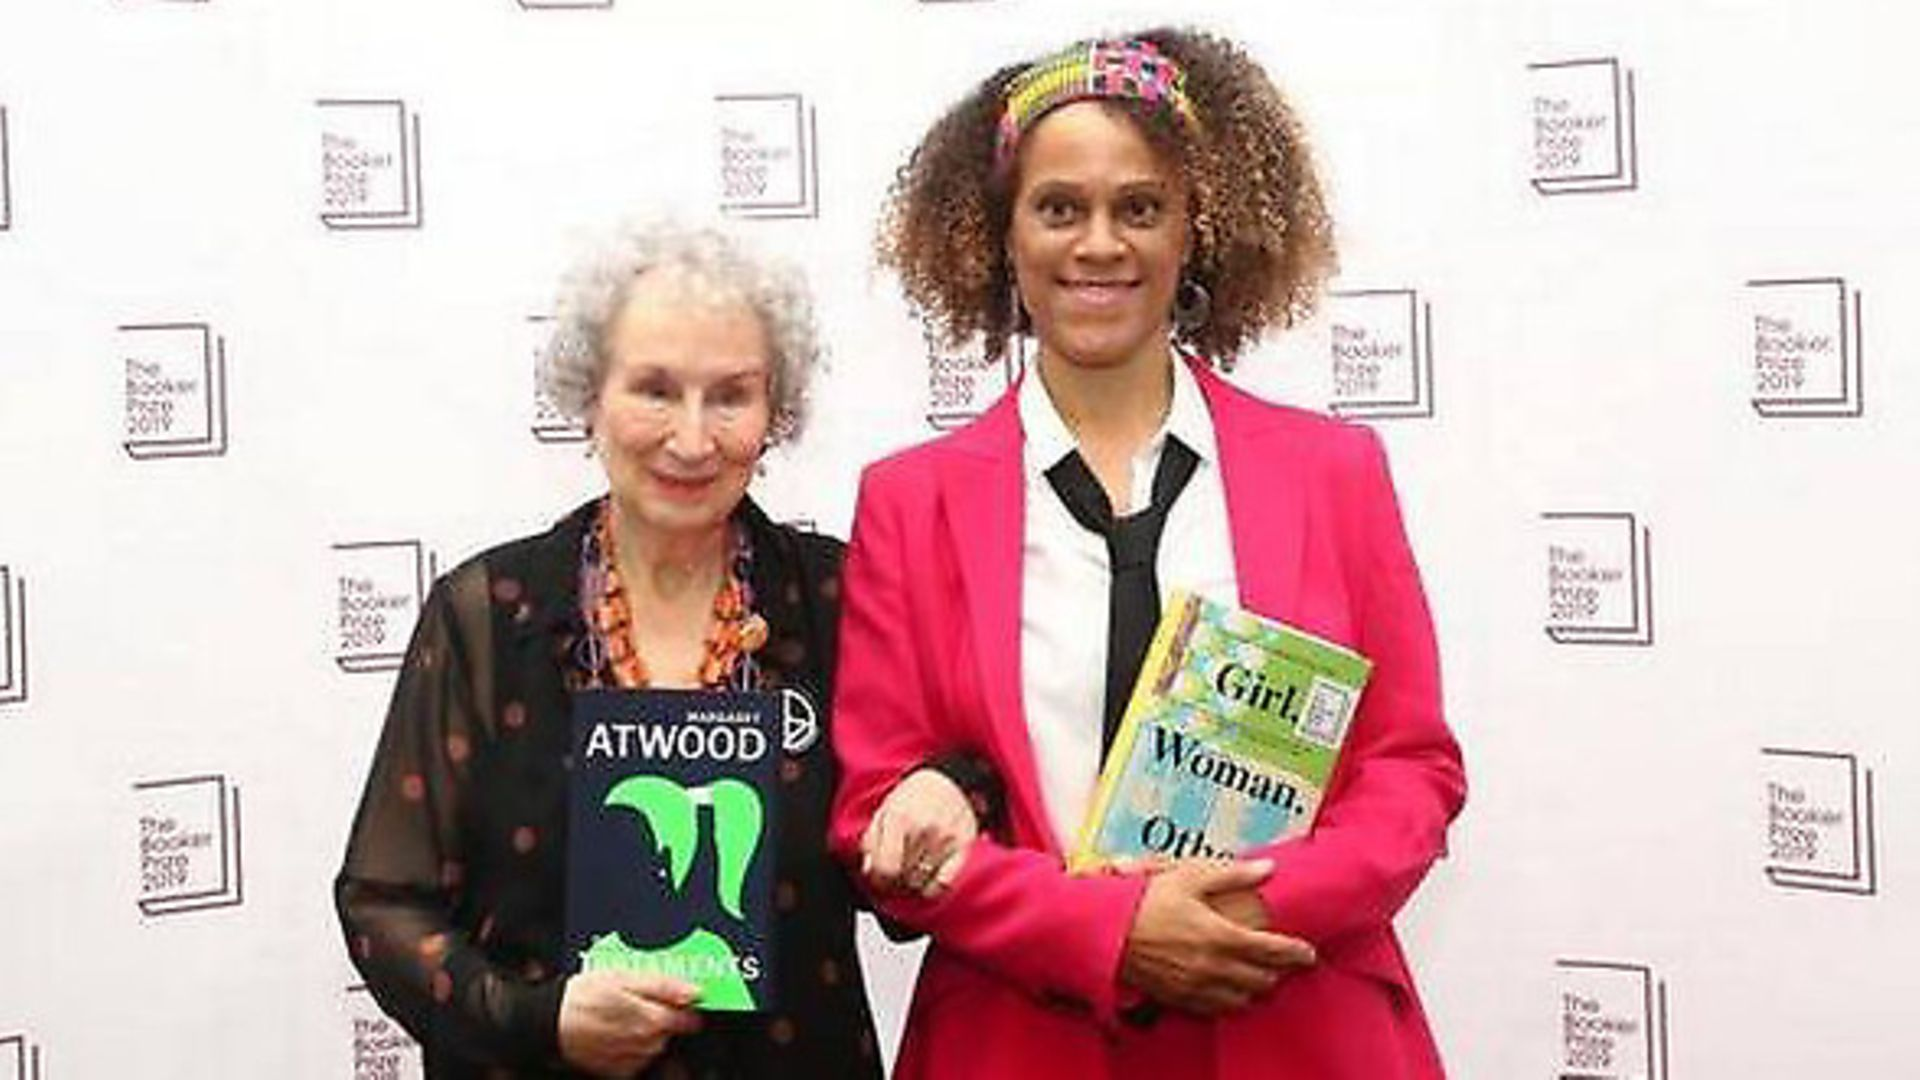 Booker Prize winners Margaret Atwood and Bernardine Evaristo. Picture: Getty Images - Credit: Archant